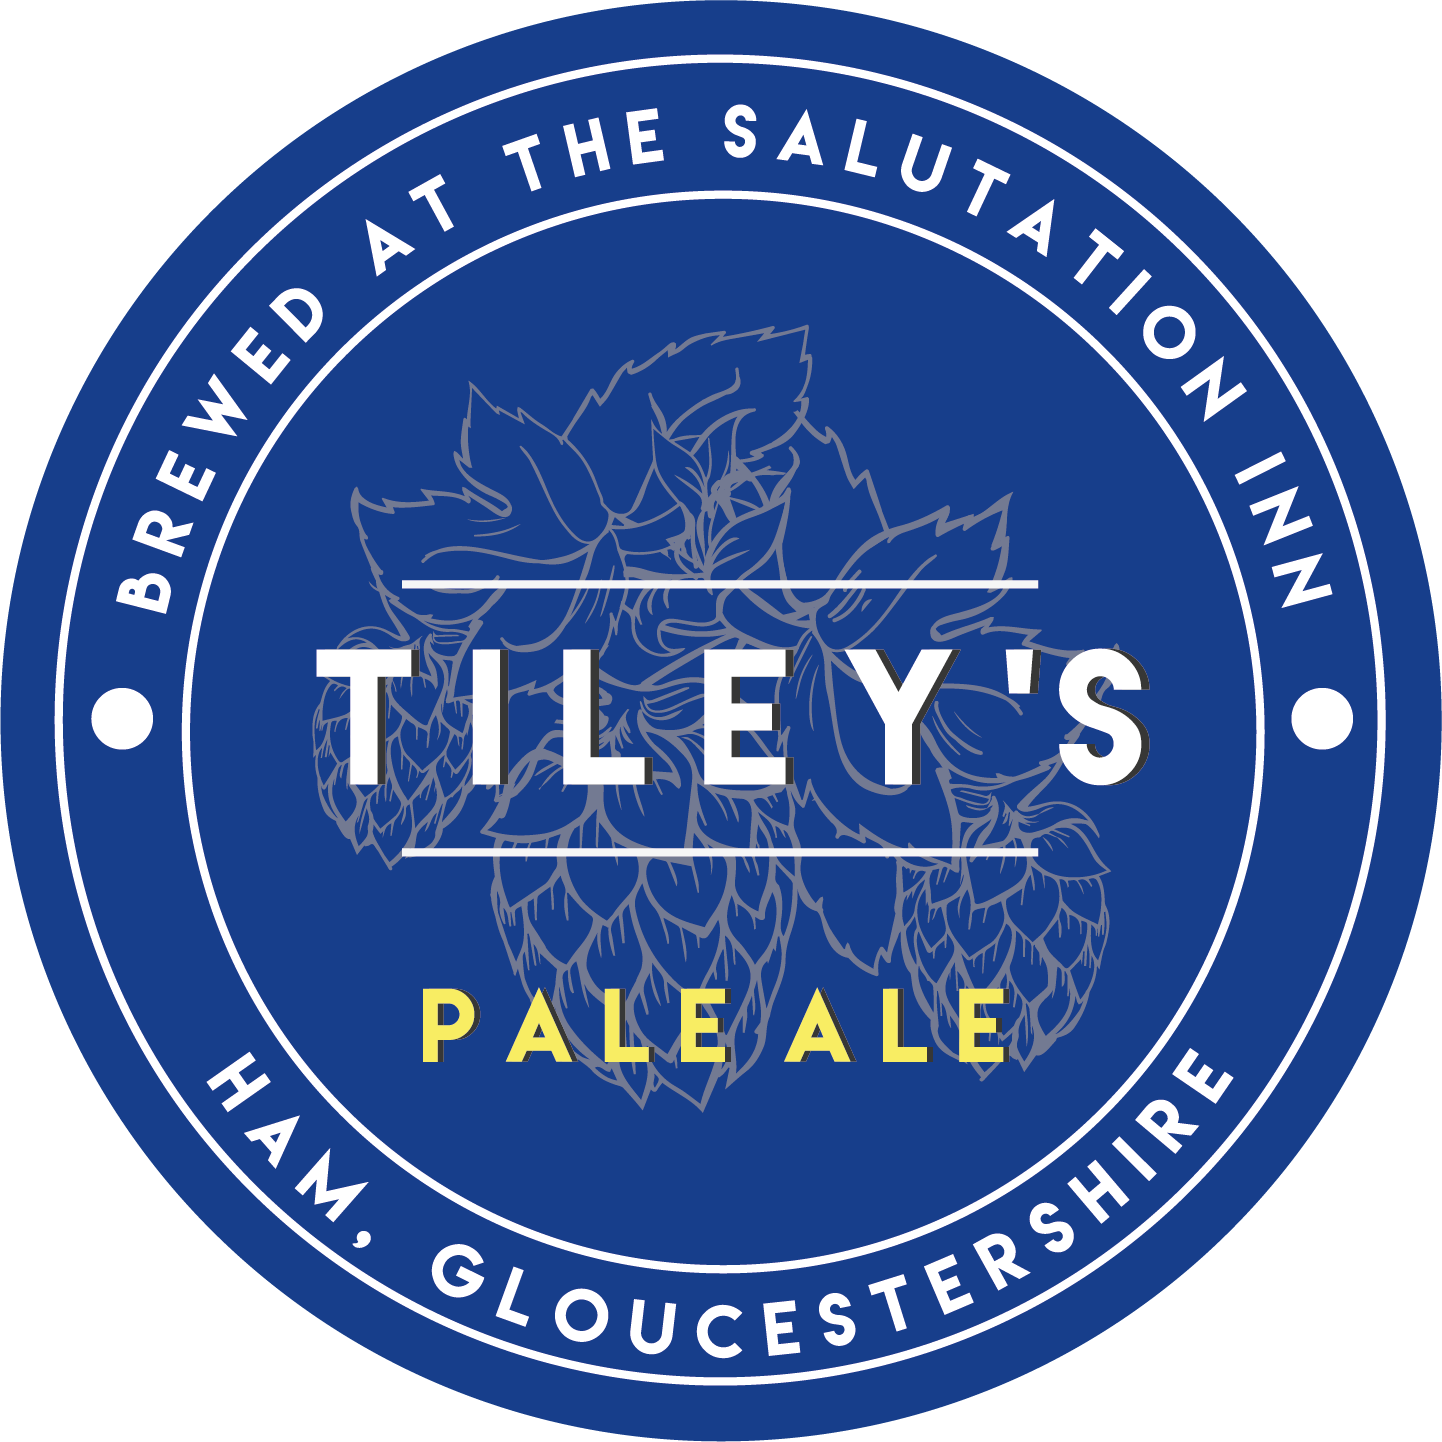 Tiley's Brewery New Zealand Pale Ale 4.8% Bag-in-Box